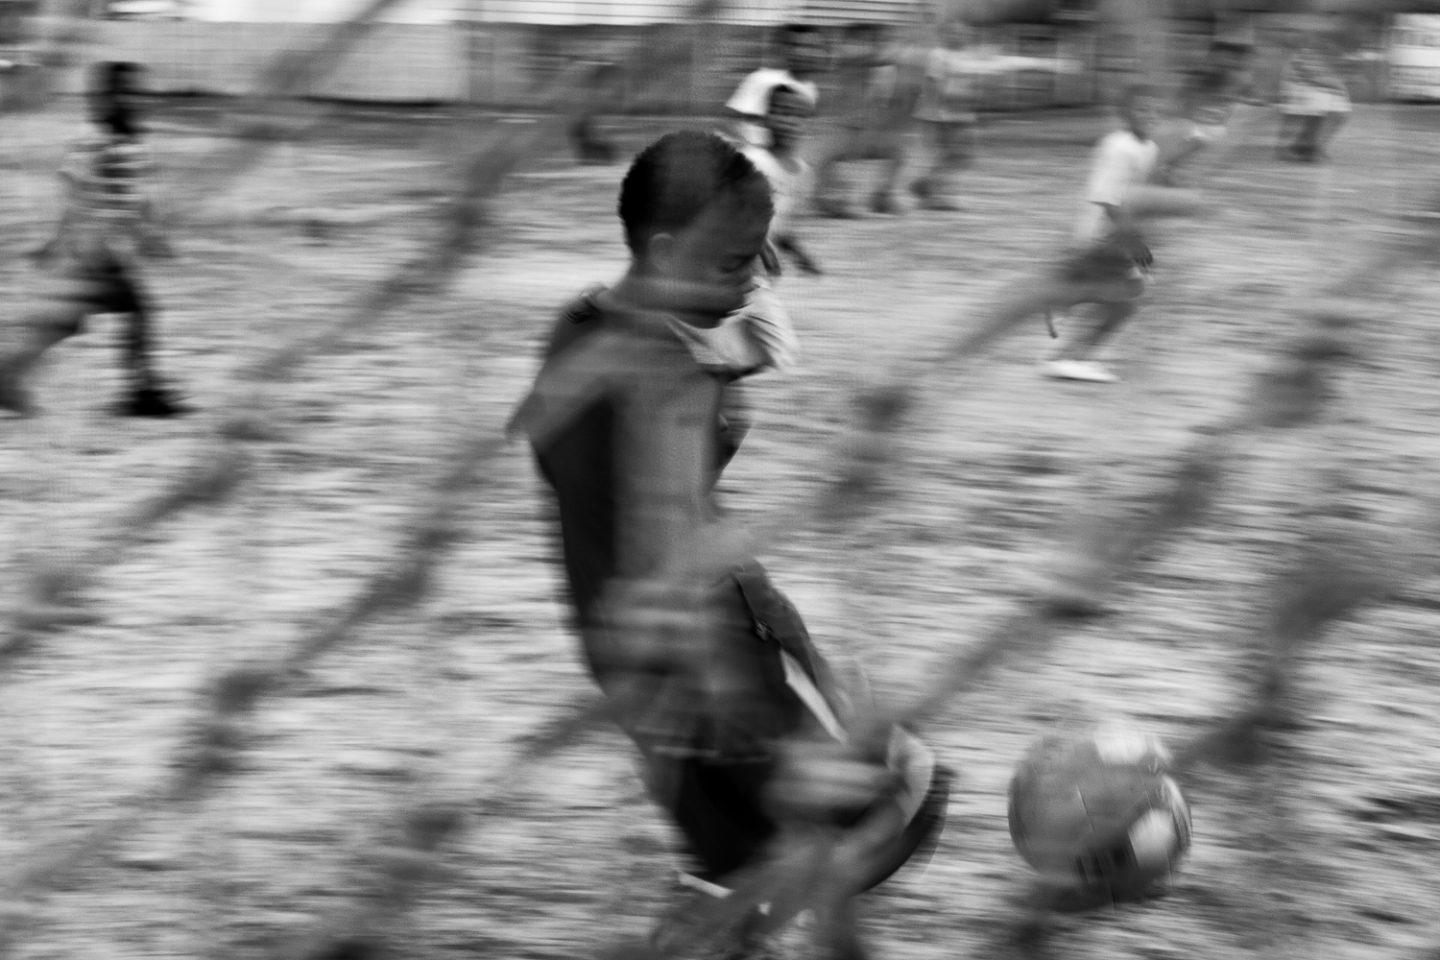 Children playing football on a community field, Mitchell's Plain, 2011.